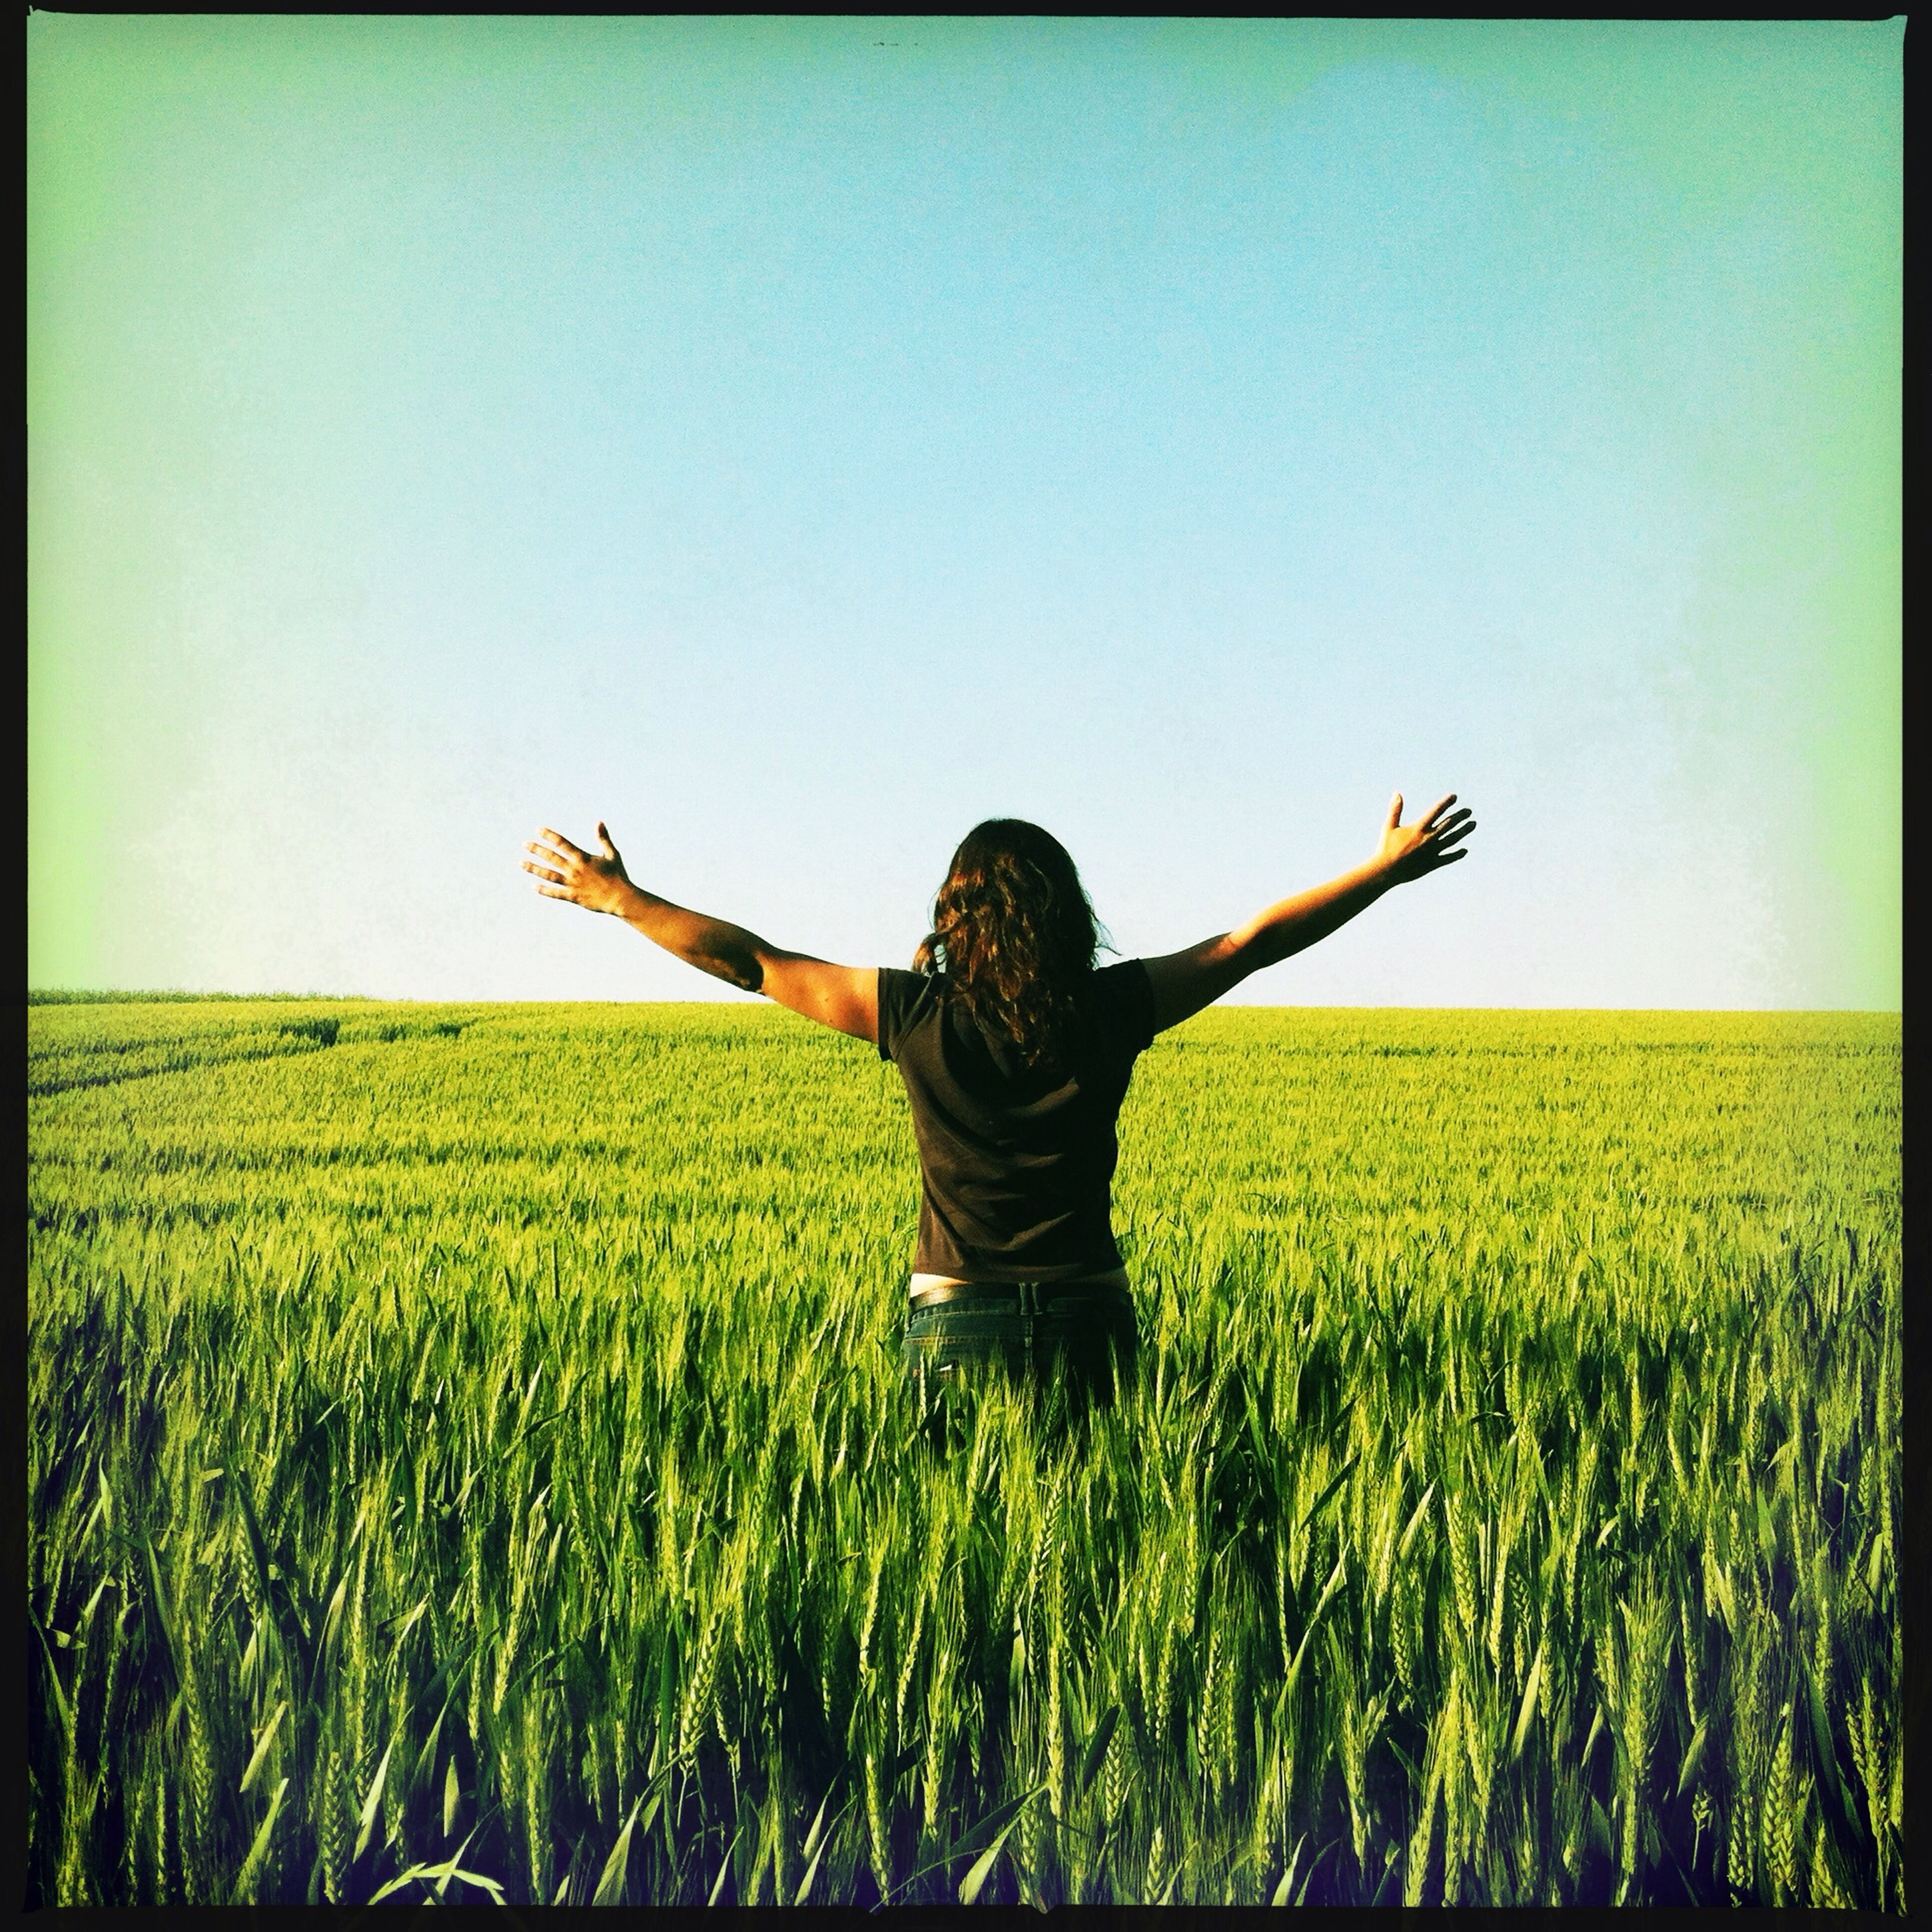 lifestyles, field, leisure activity, standing, grass, casual clothing, full length, transfer print, clear sky, copy space, landscape, three quarter length, auto post production filter, young adult, arms outstretched, sky, person, grassy